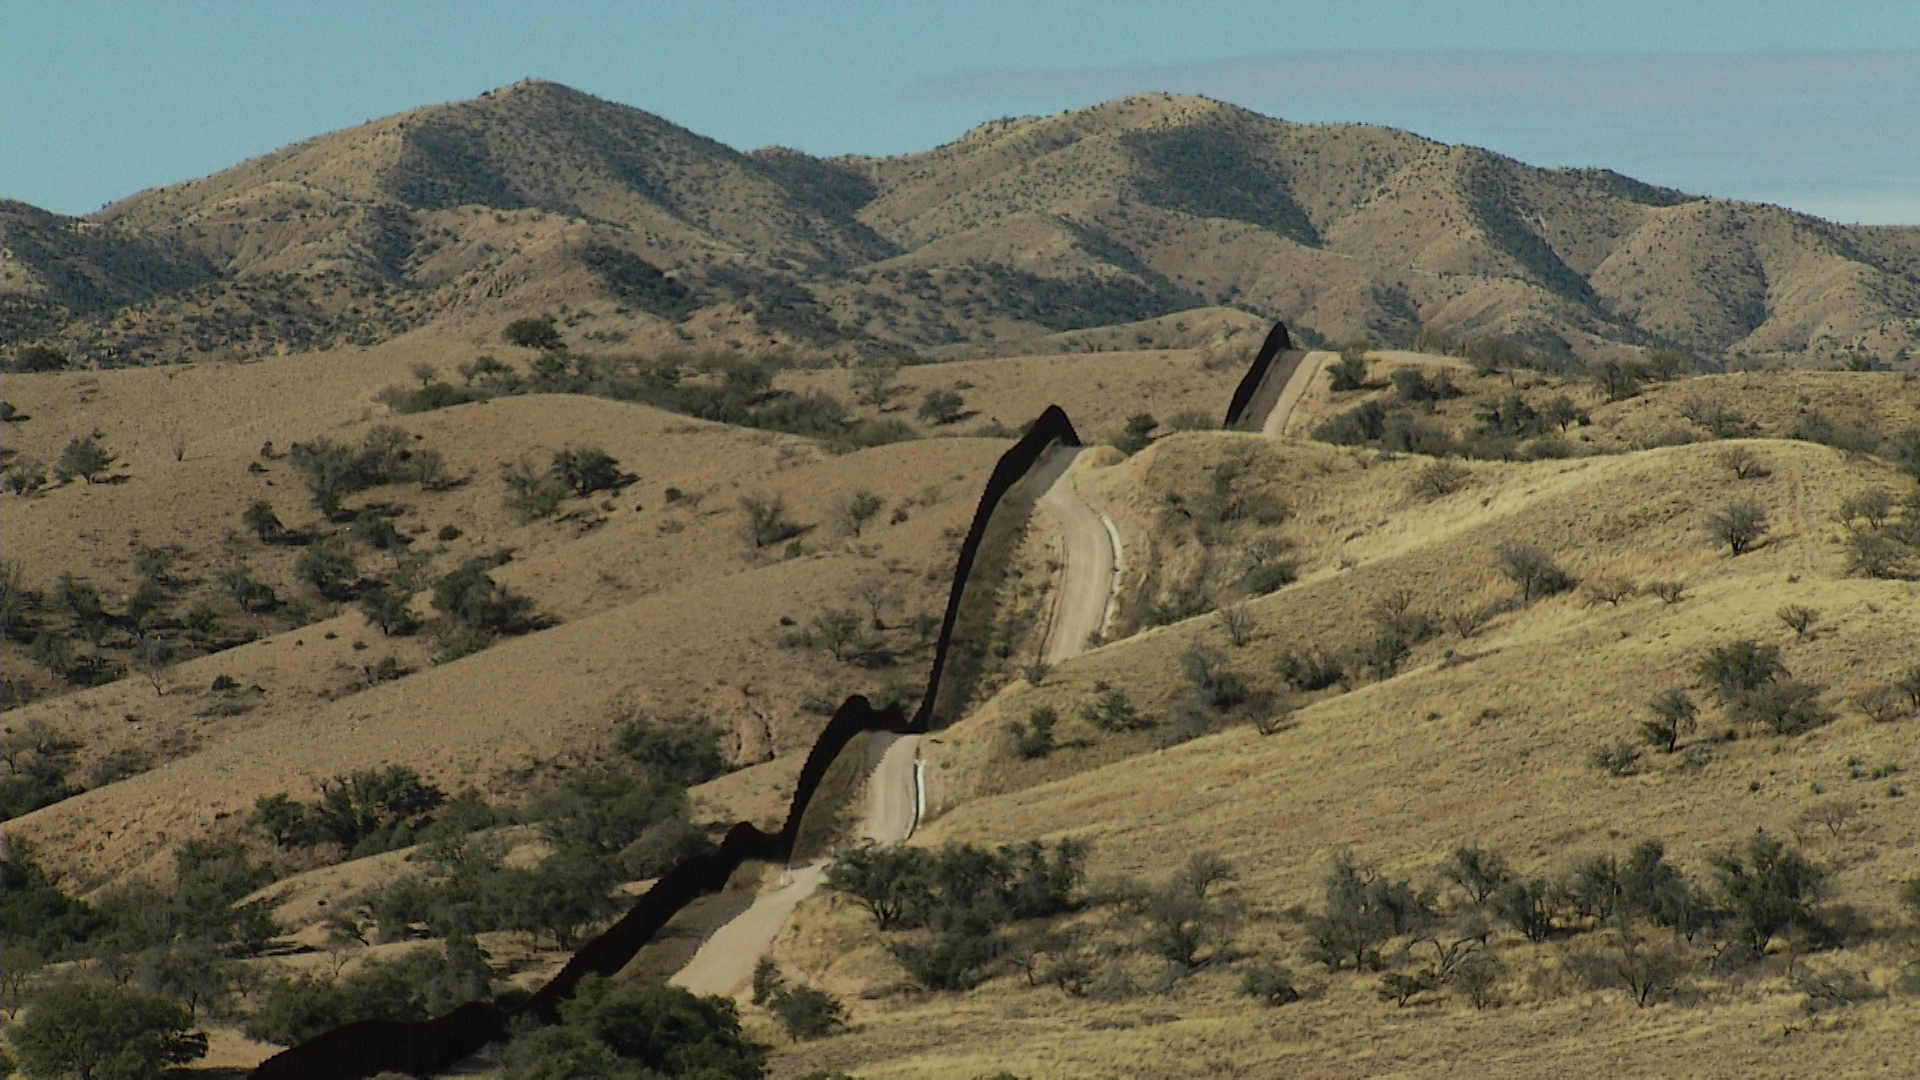 The border fence passes over hills on the line between Arizona and Mexico.